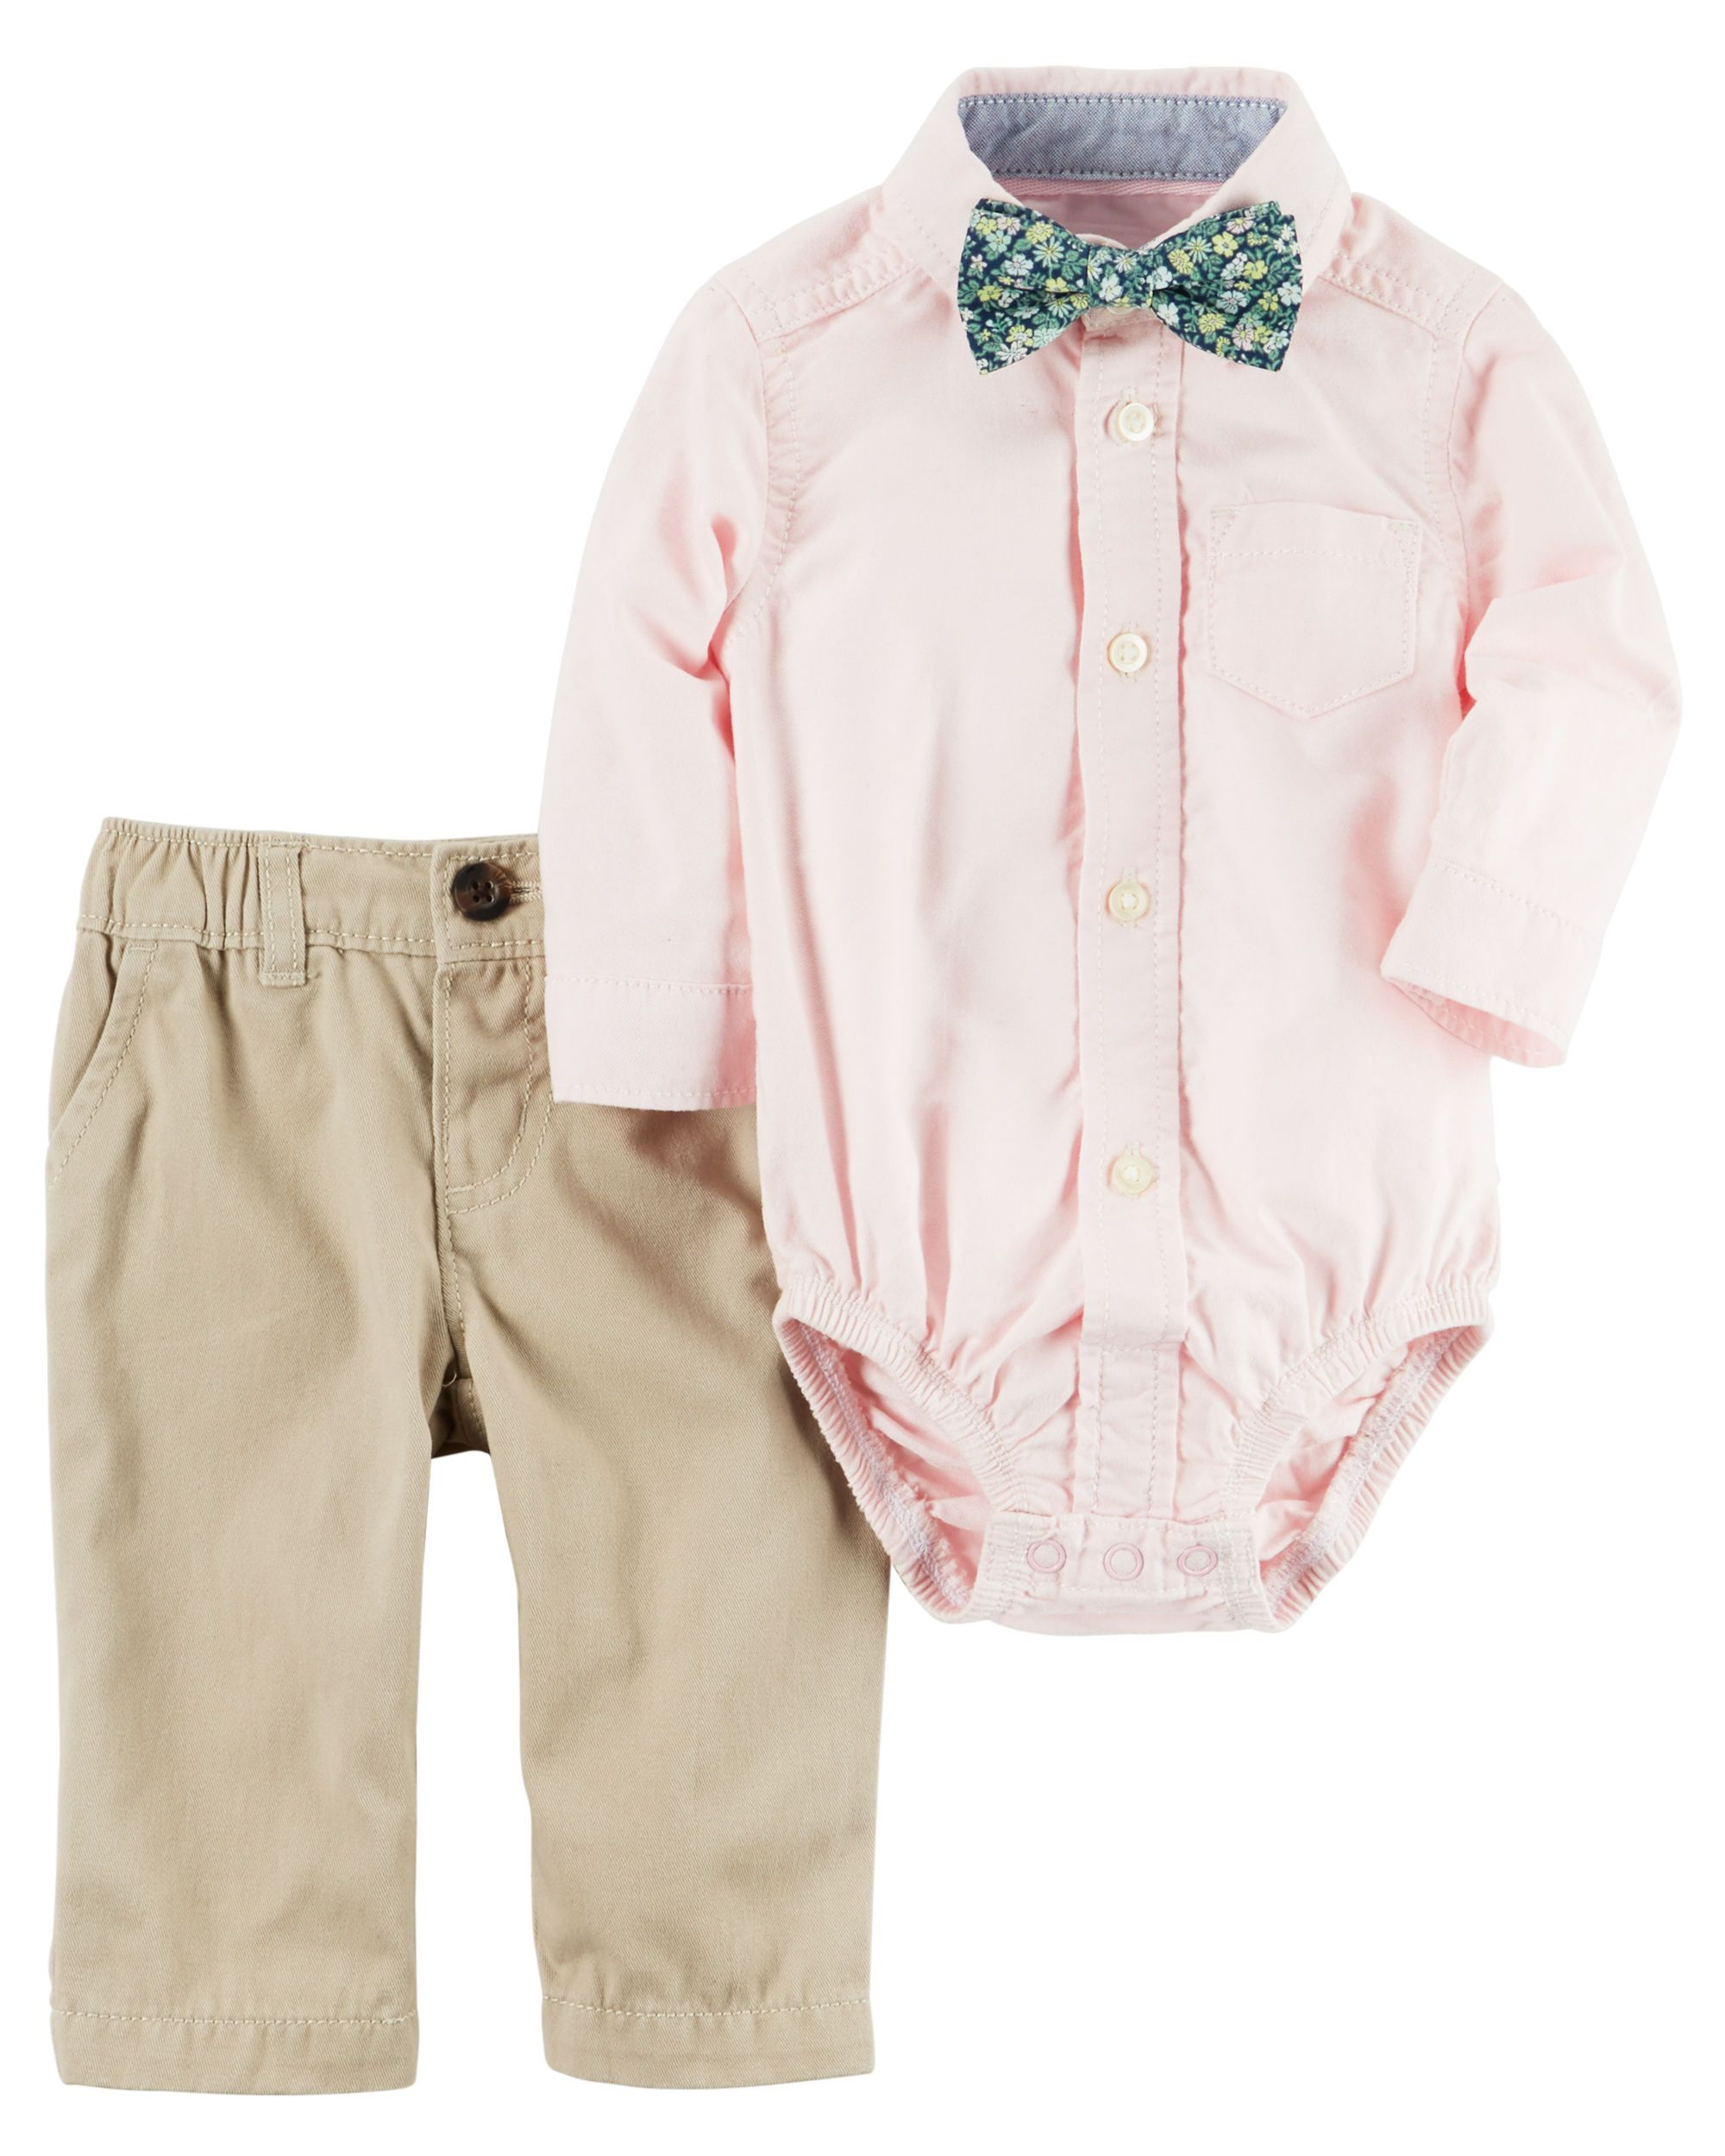 d465be431 Baby Boy 3-Piece Dress Me Up Set Featuring a crisp oxford bodysuit and  easy-on twill pants, he's ready for the Easter Bunny! A bow tie completes  this ...